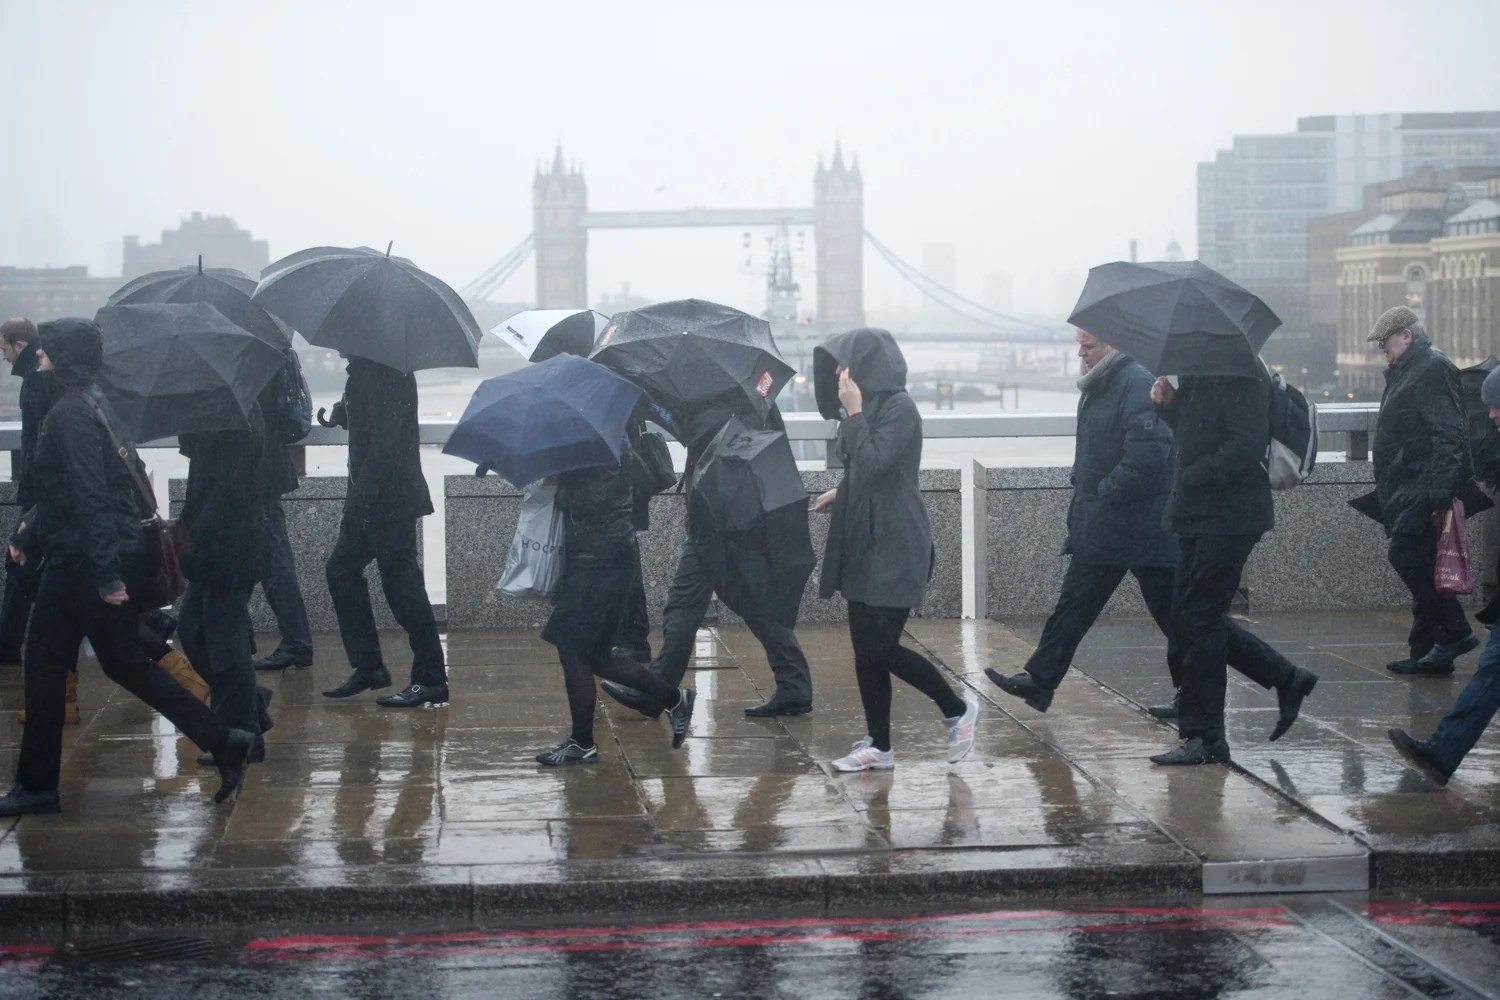 London Braced For More Winter Weather Misery Despite